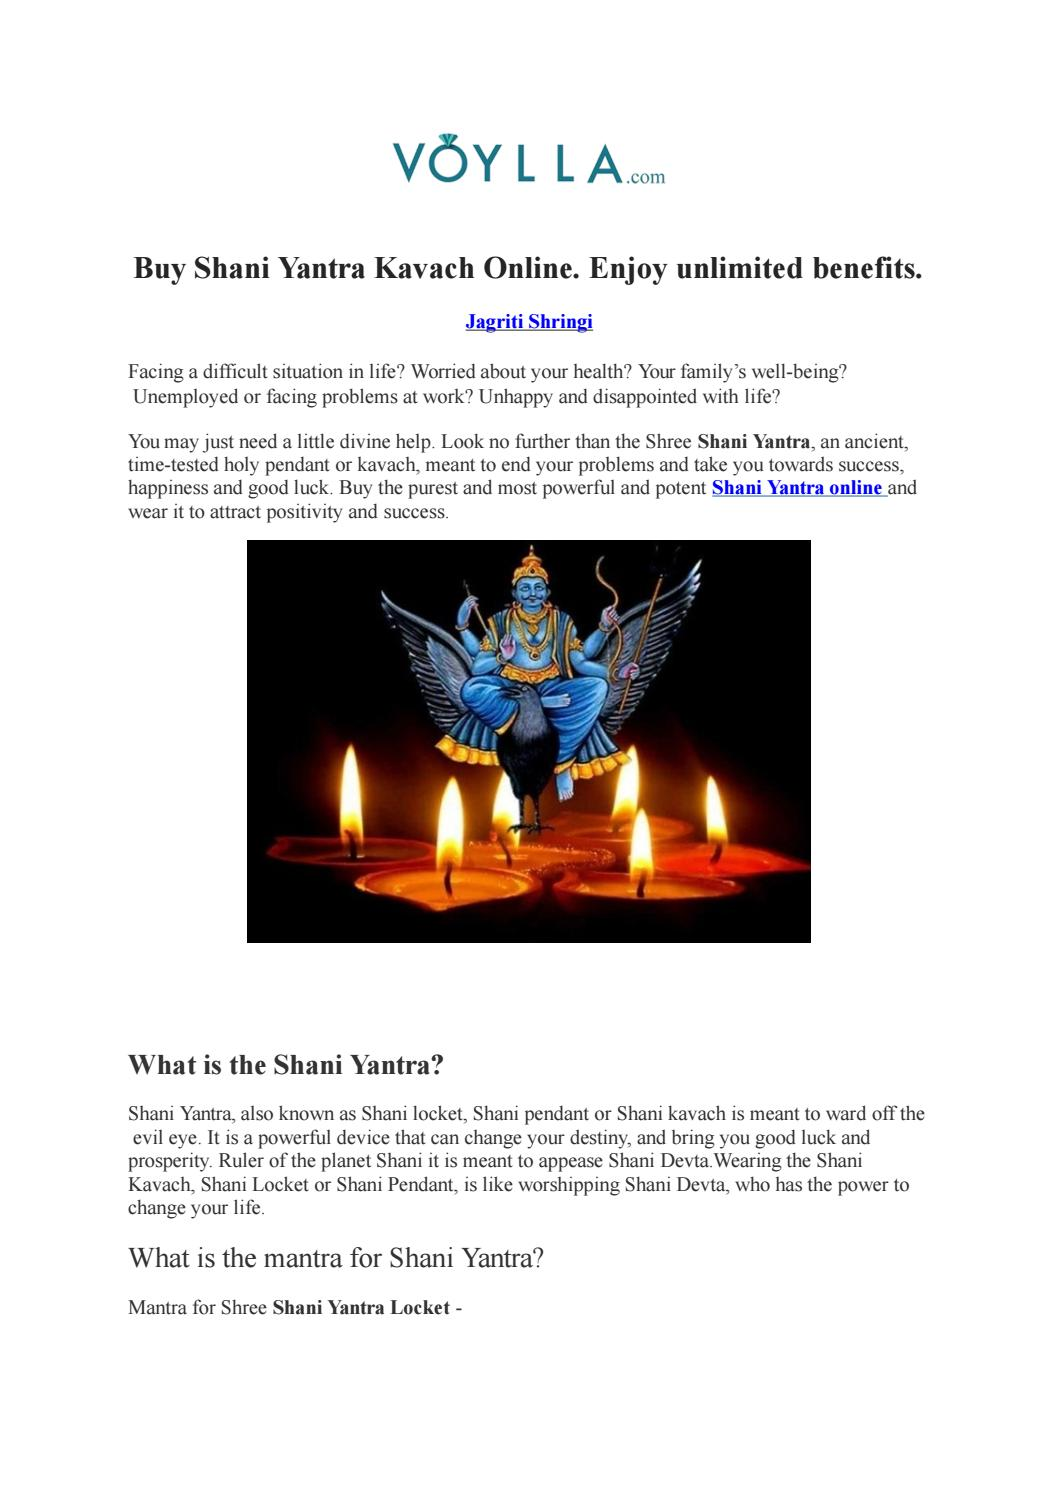 Buy Shani Yantra Kavach Online  Enjoy unlimited benefits  by